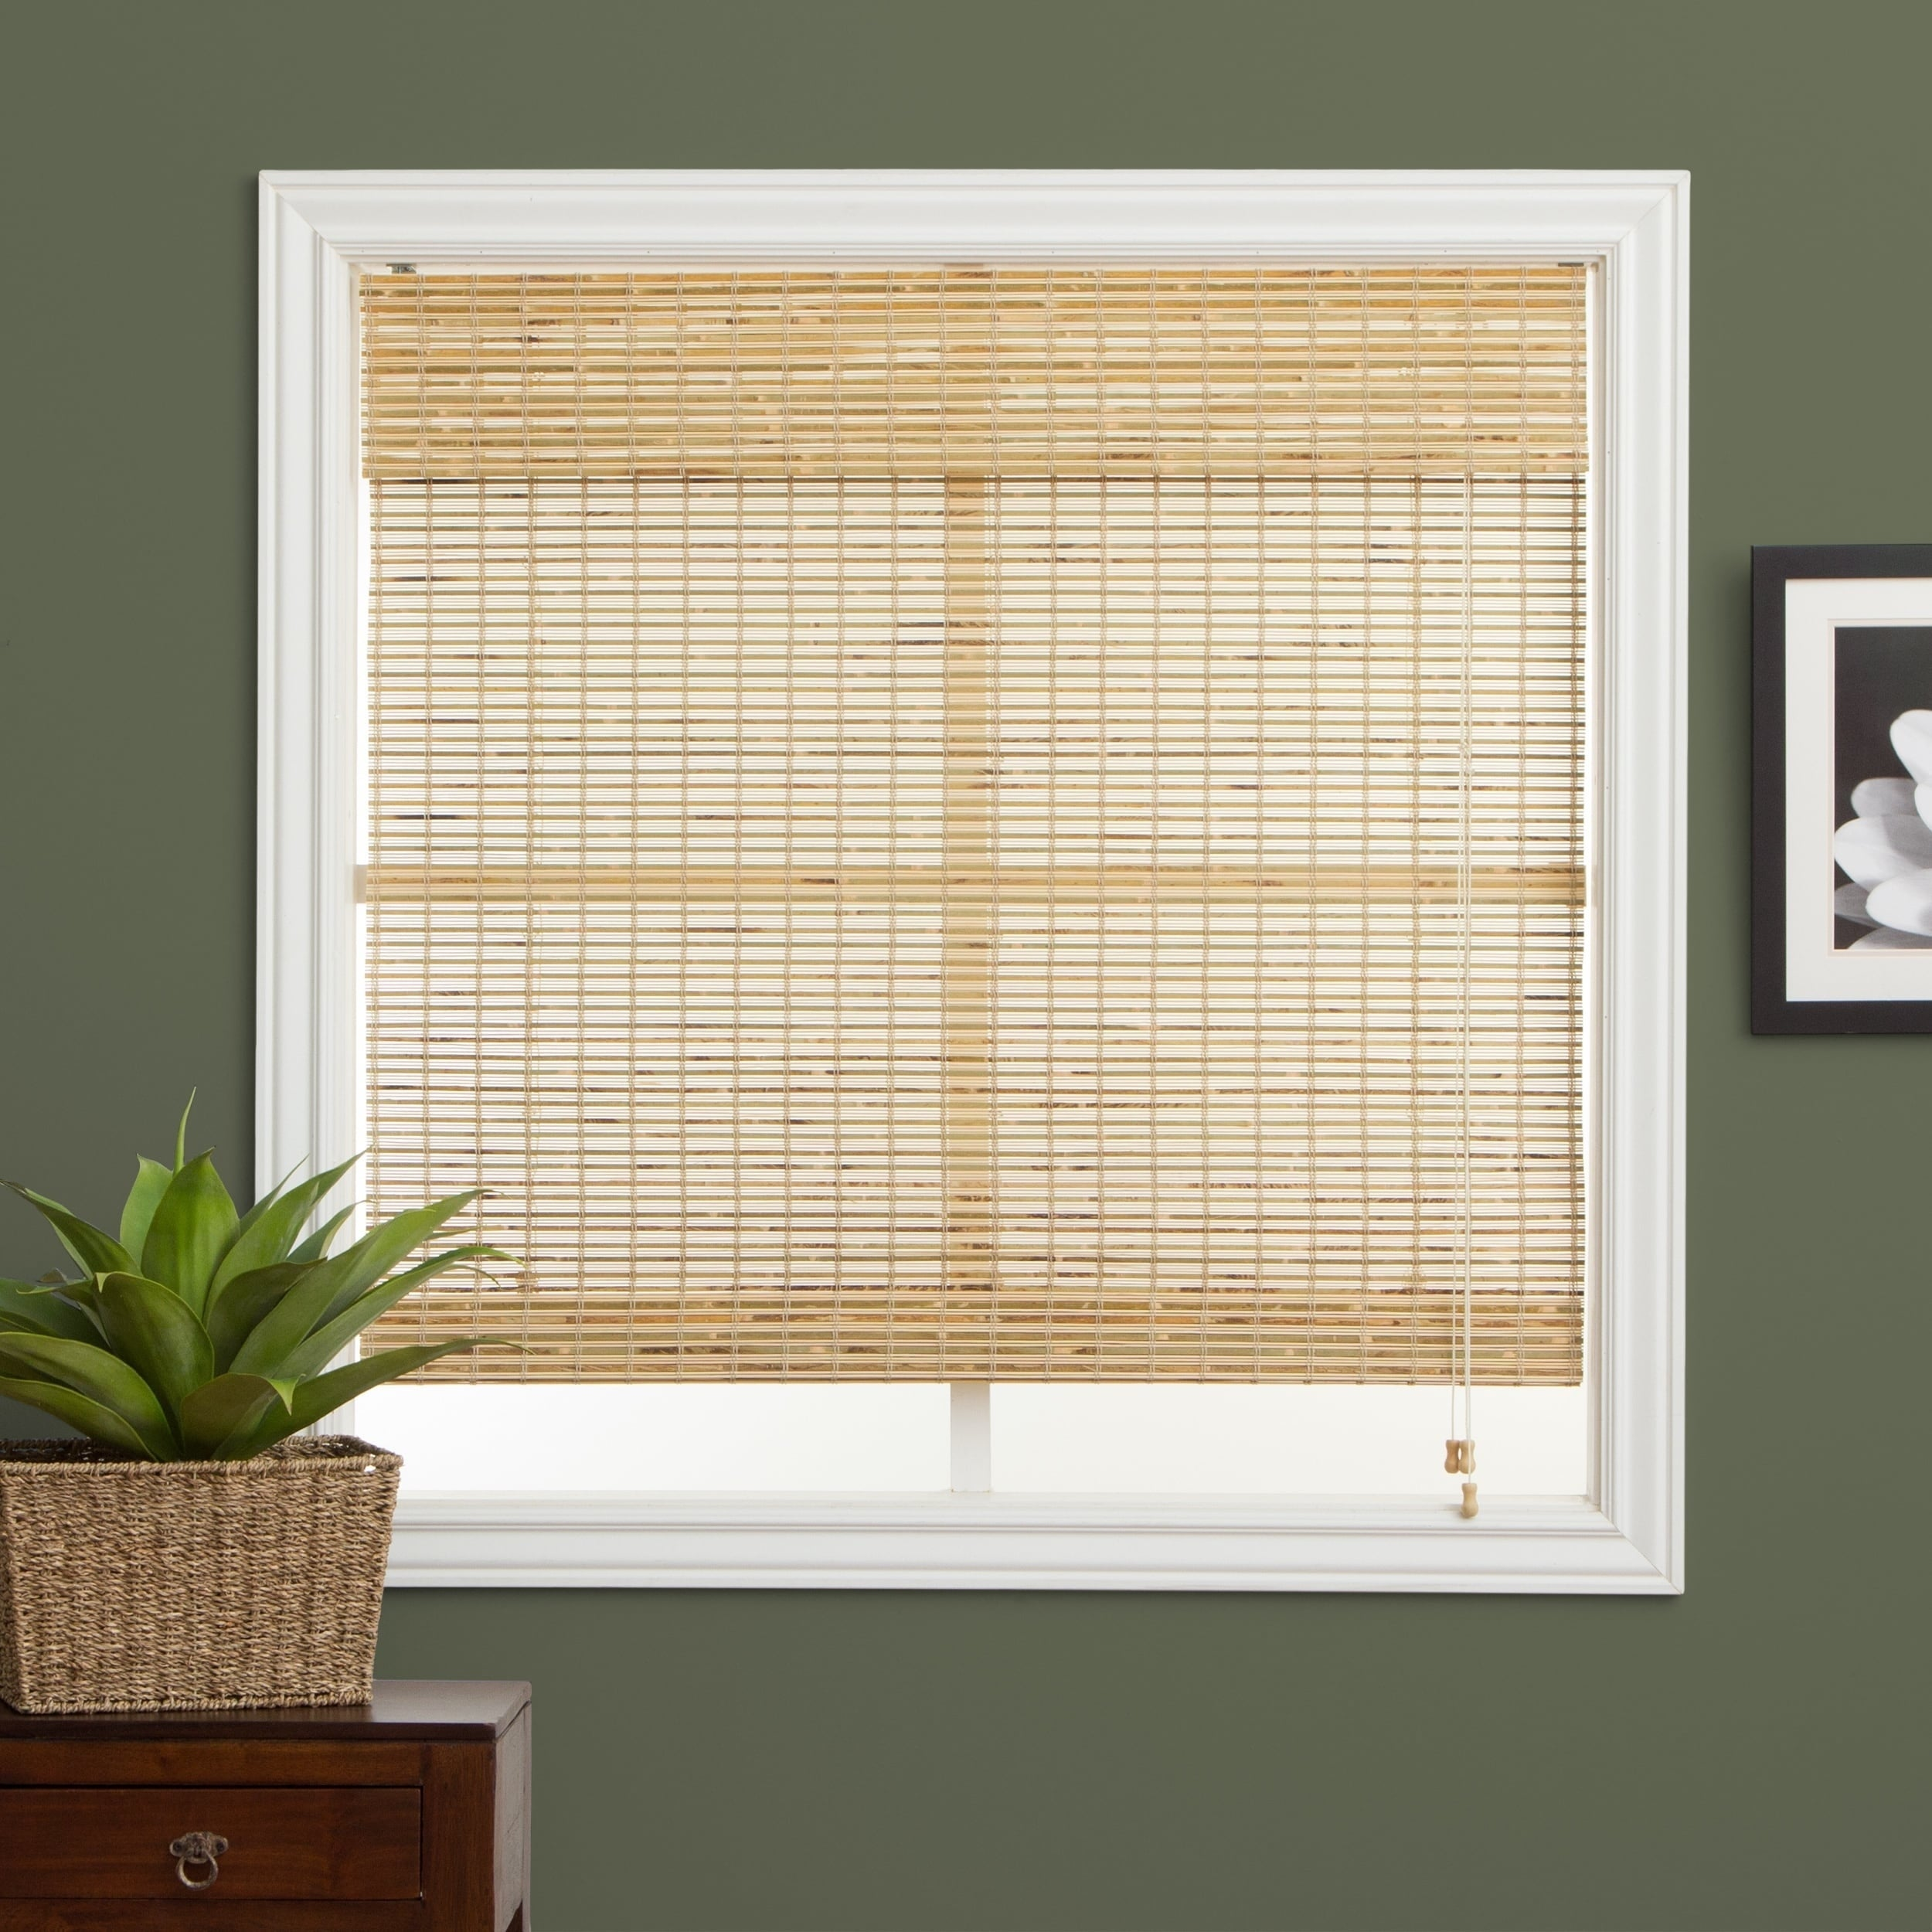 window inch overstock real garden customized arlo today blinds product shipping wood home free